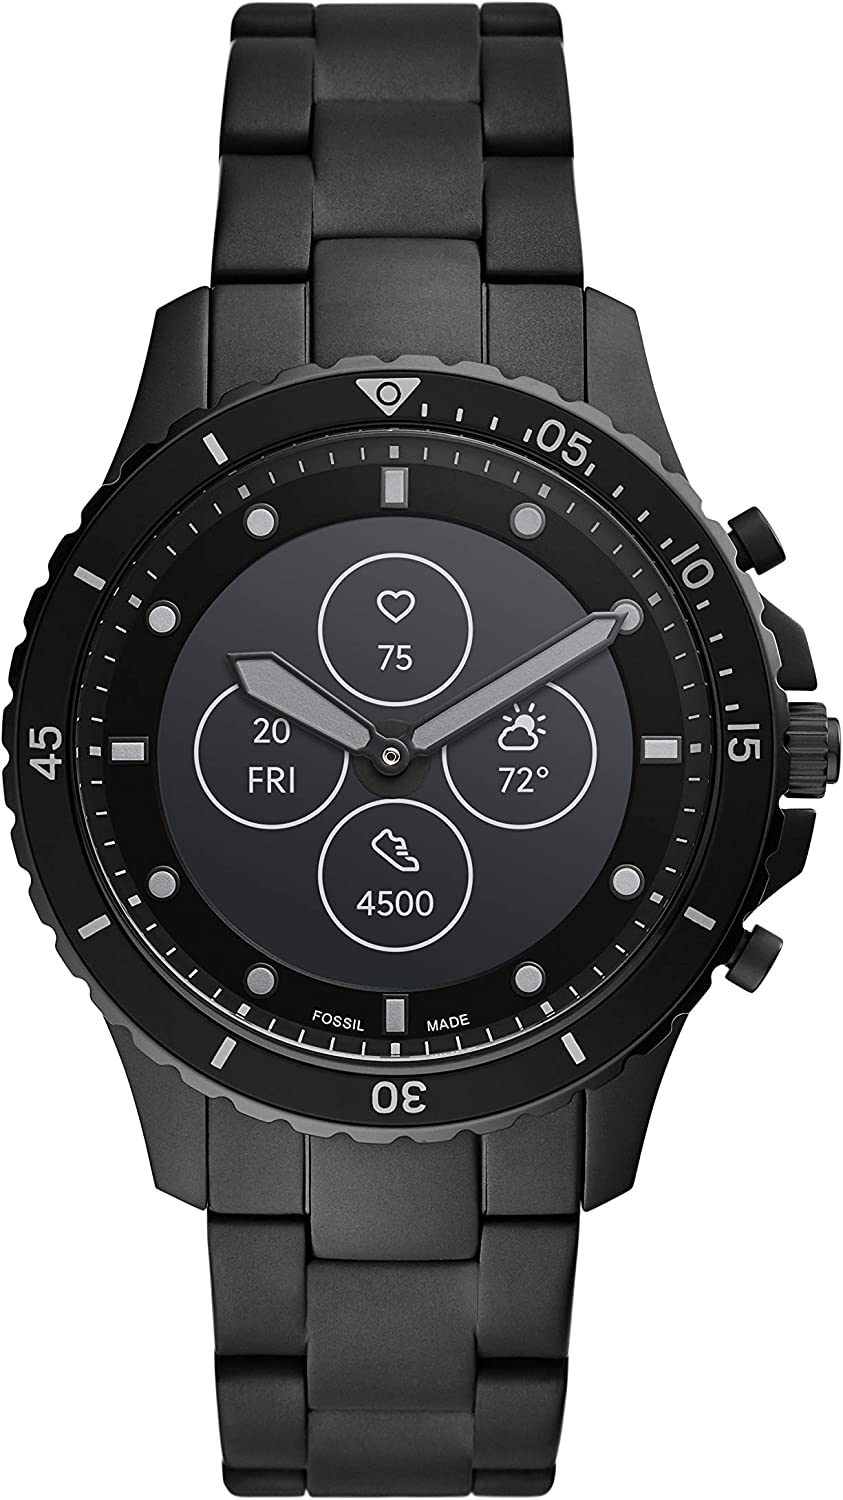 Fossil Men's FB Fossil Blue Hybrid Smartwatch HR with Always-On Readout Display, Heart Rate, Activity Tracking, Smartphone Notifications, Message Previews